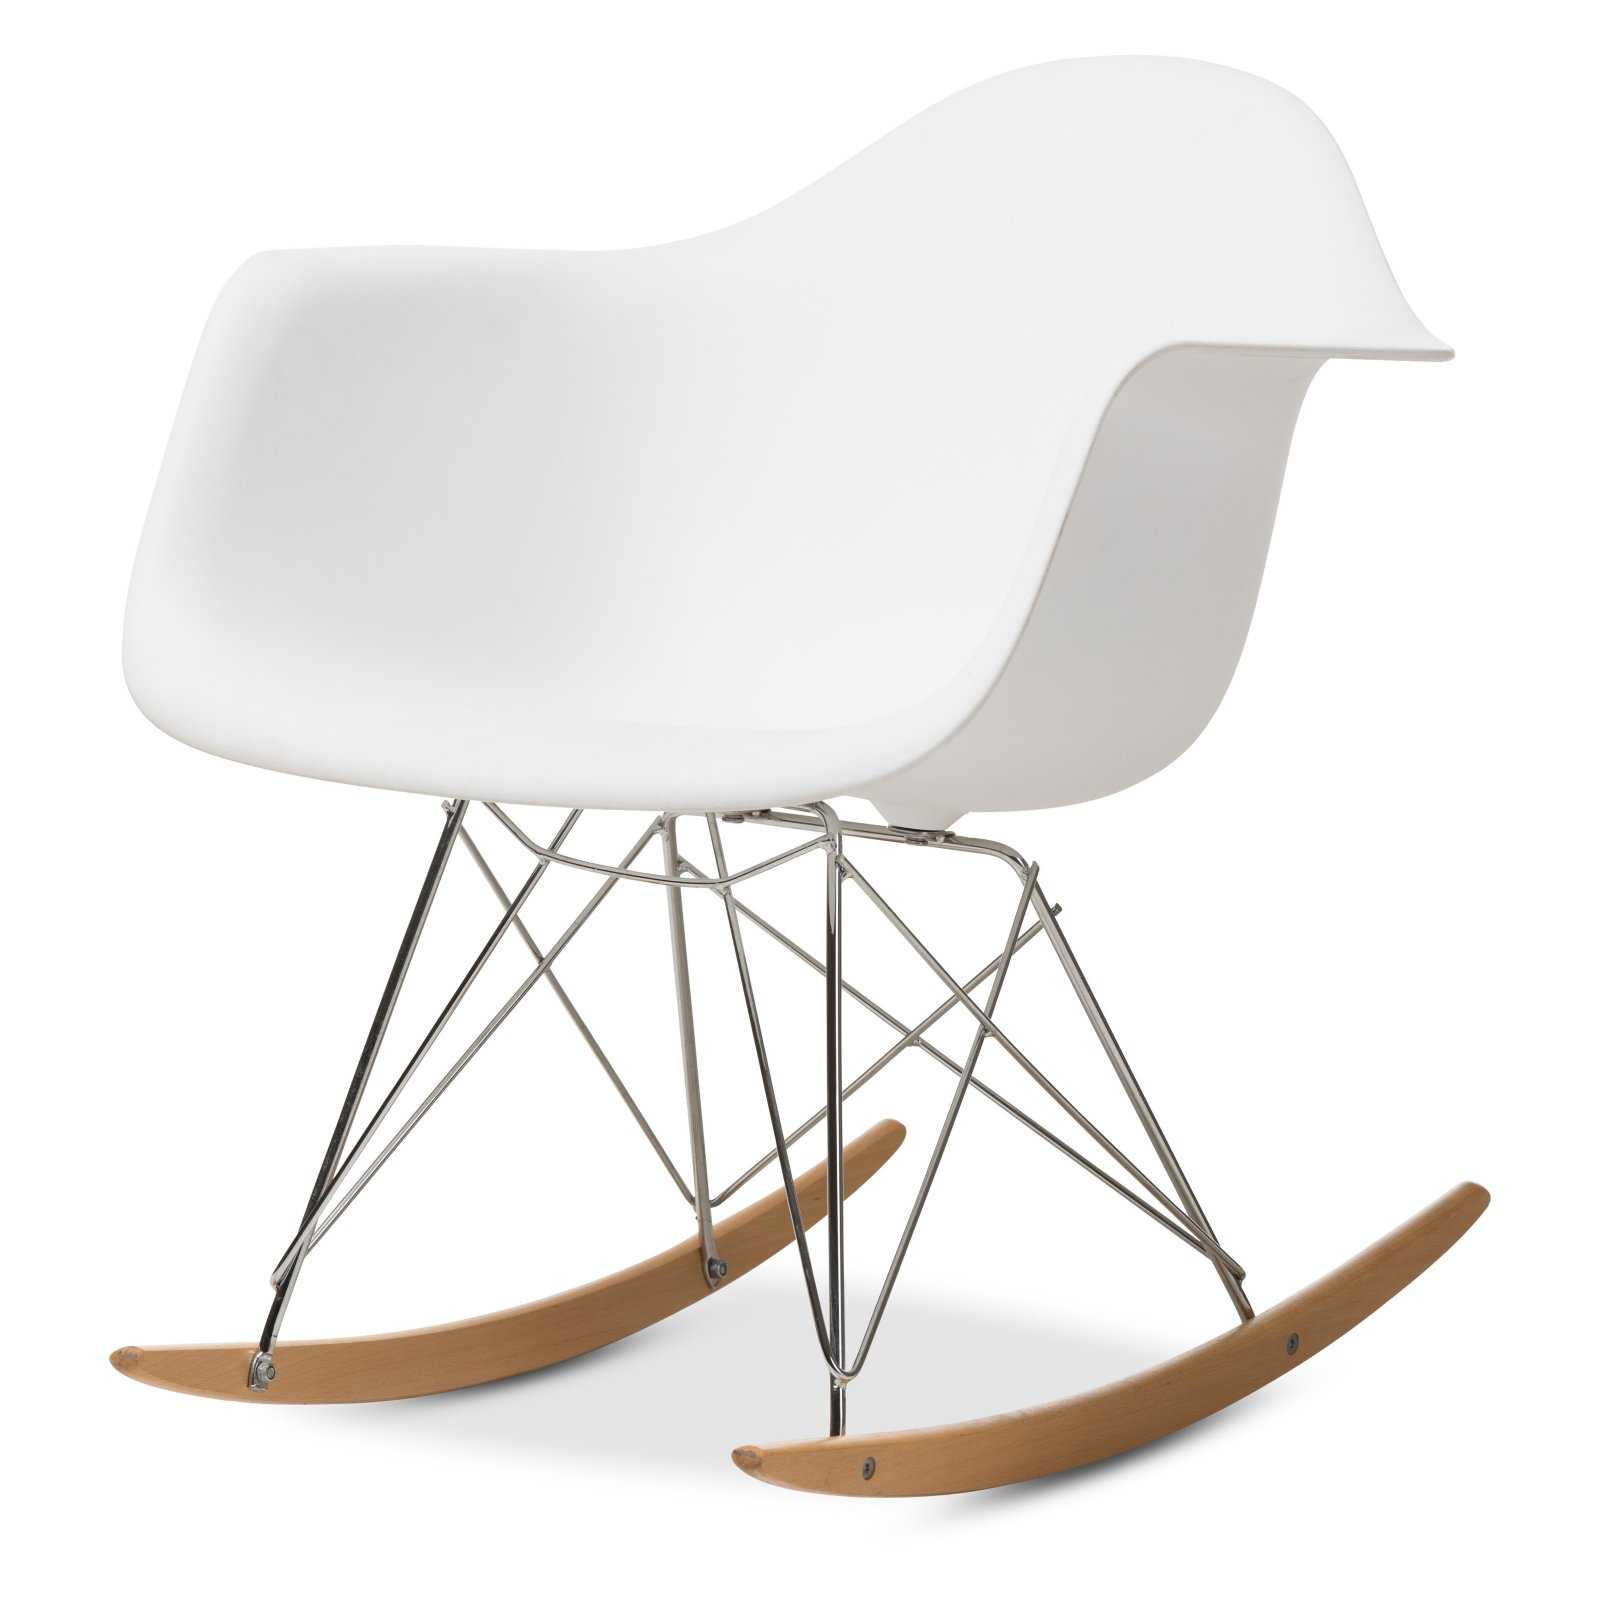 Baxton Studio White Plastic Rocking Chair | Products In 2019 With Regard To Tobacco Brown Kids Rocking Chairs (View 19 of 20)